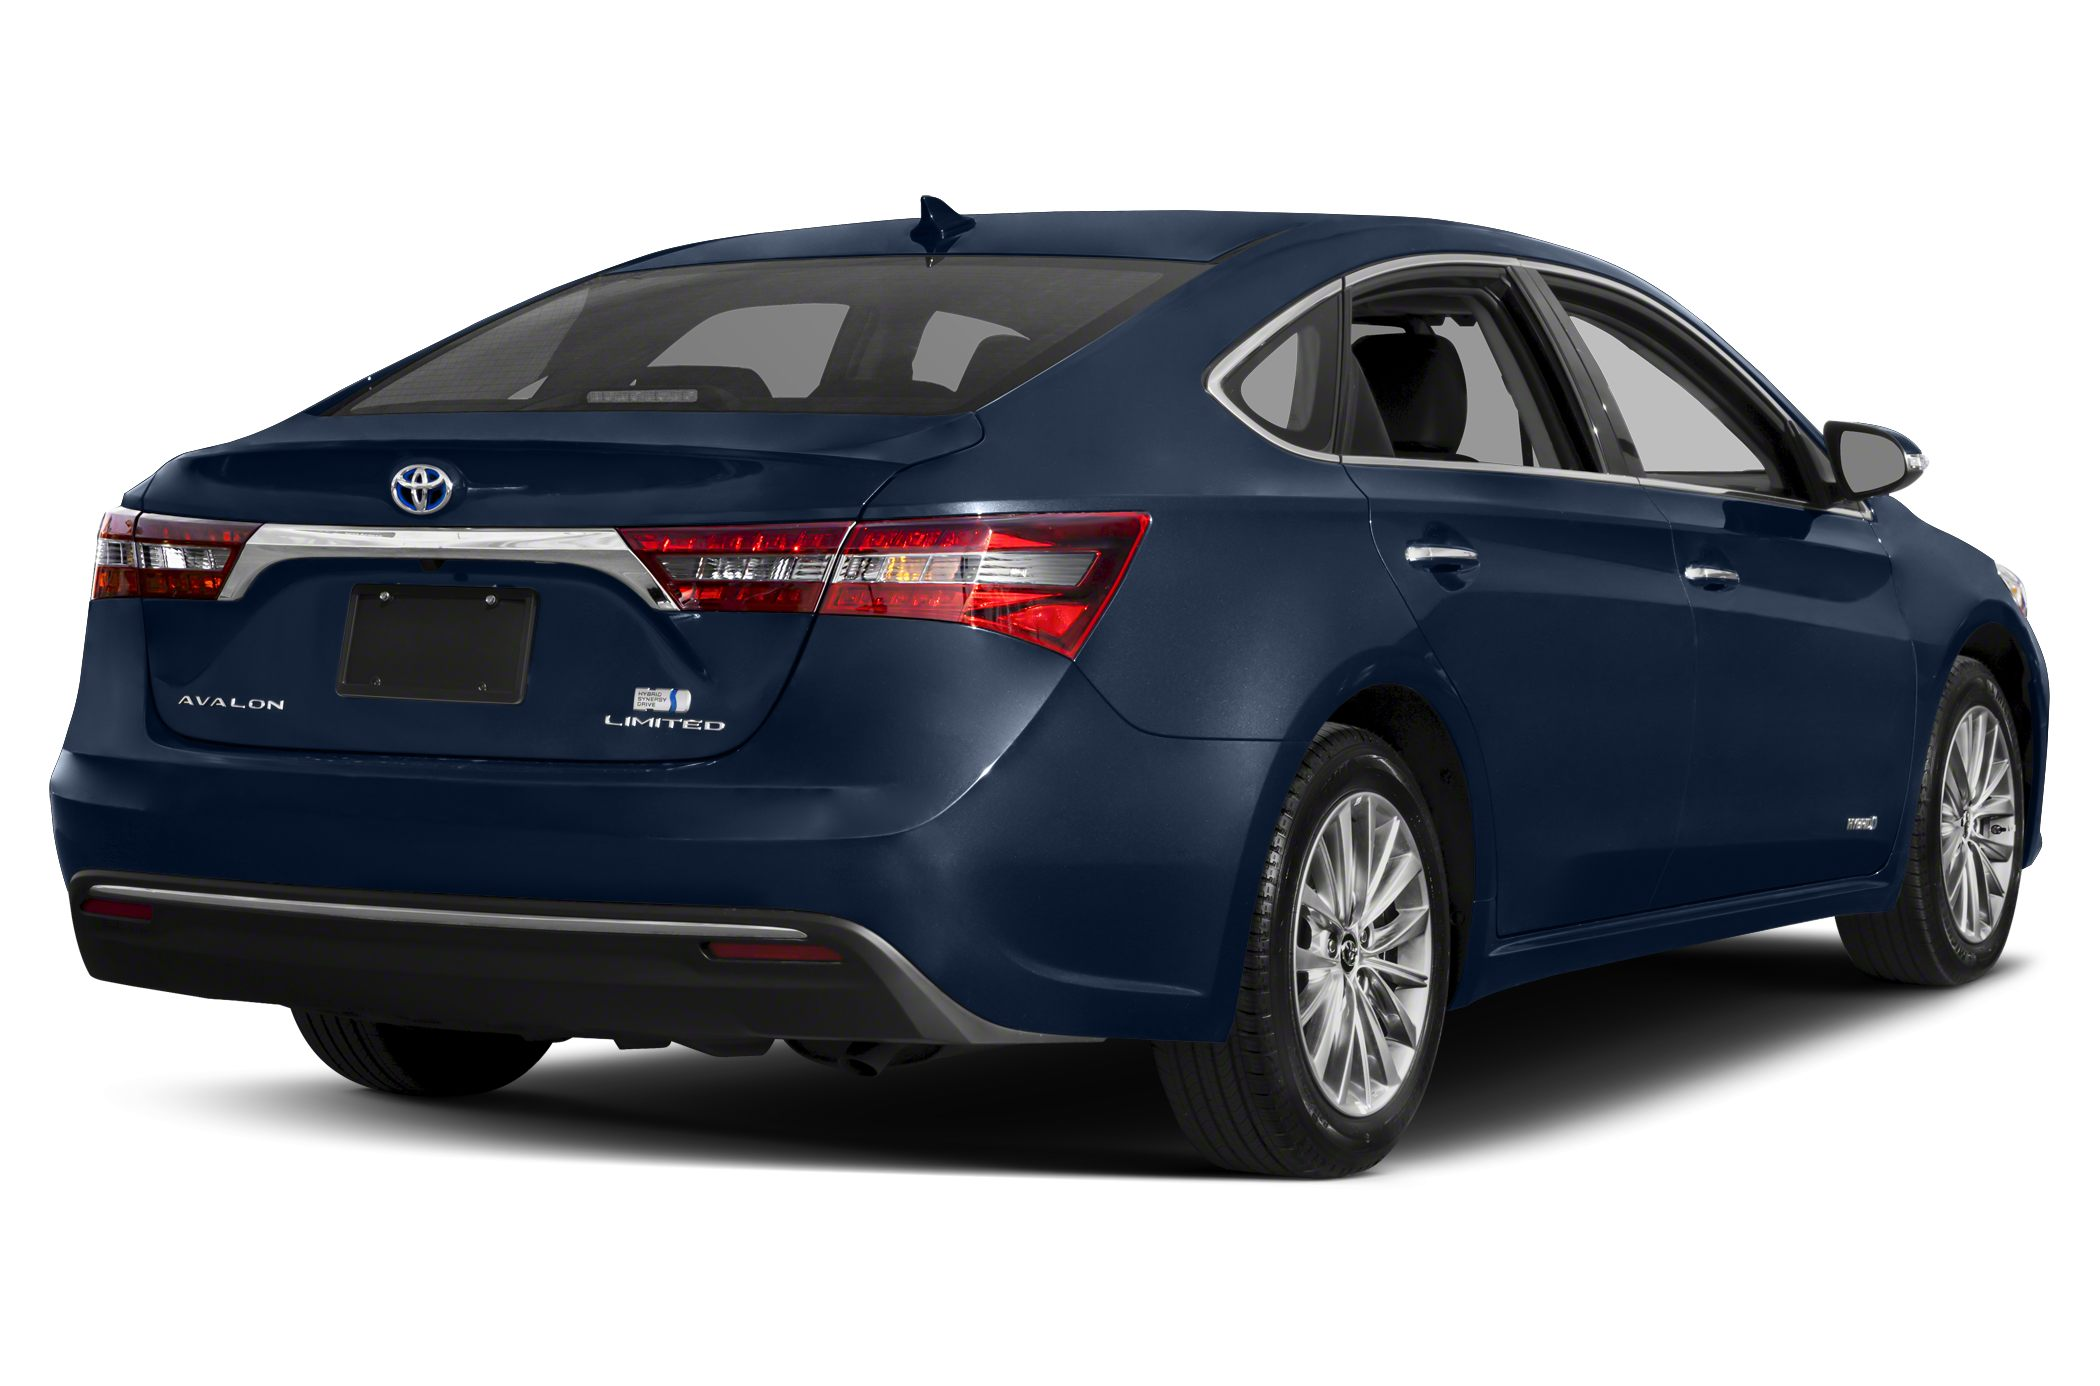 2017 toyota avalon hybrid deals prices incentives leases overview carsdirect. Black Bedroom Furniture Sets. Home Design Ideas